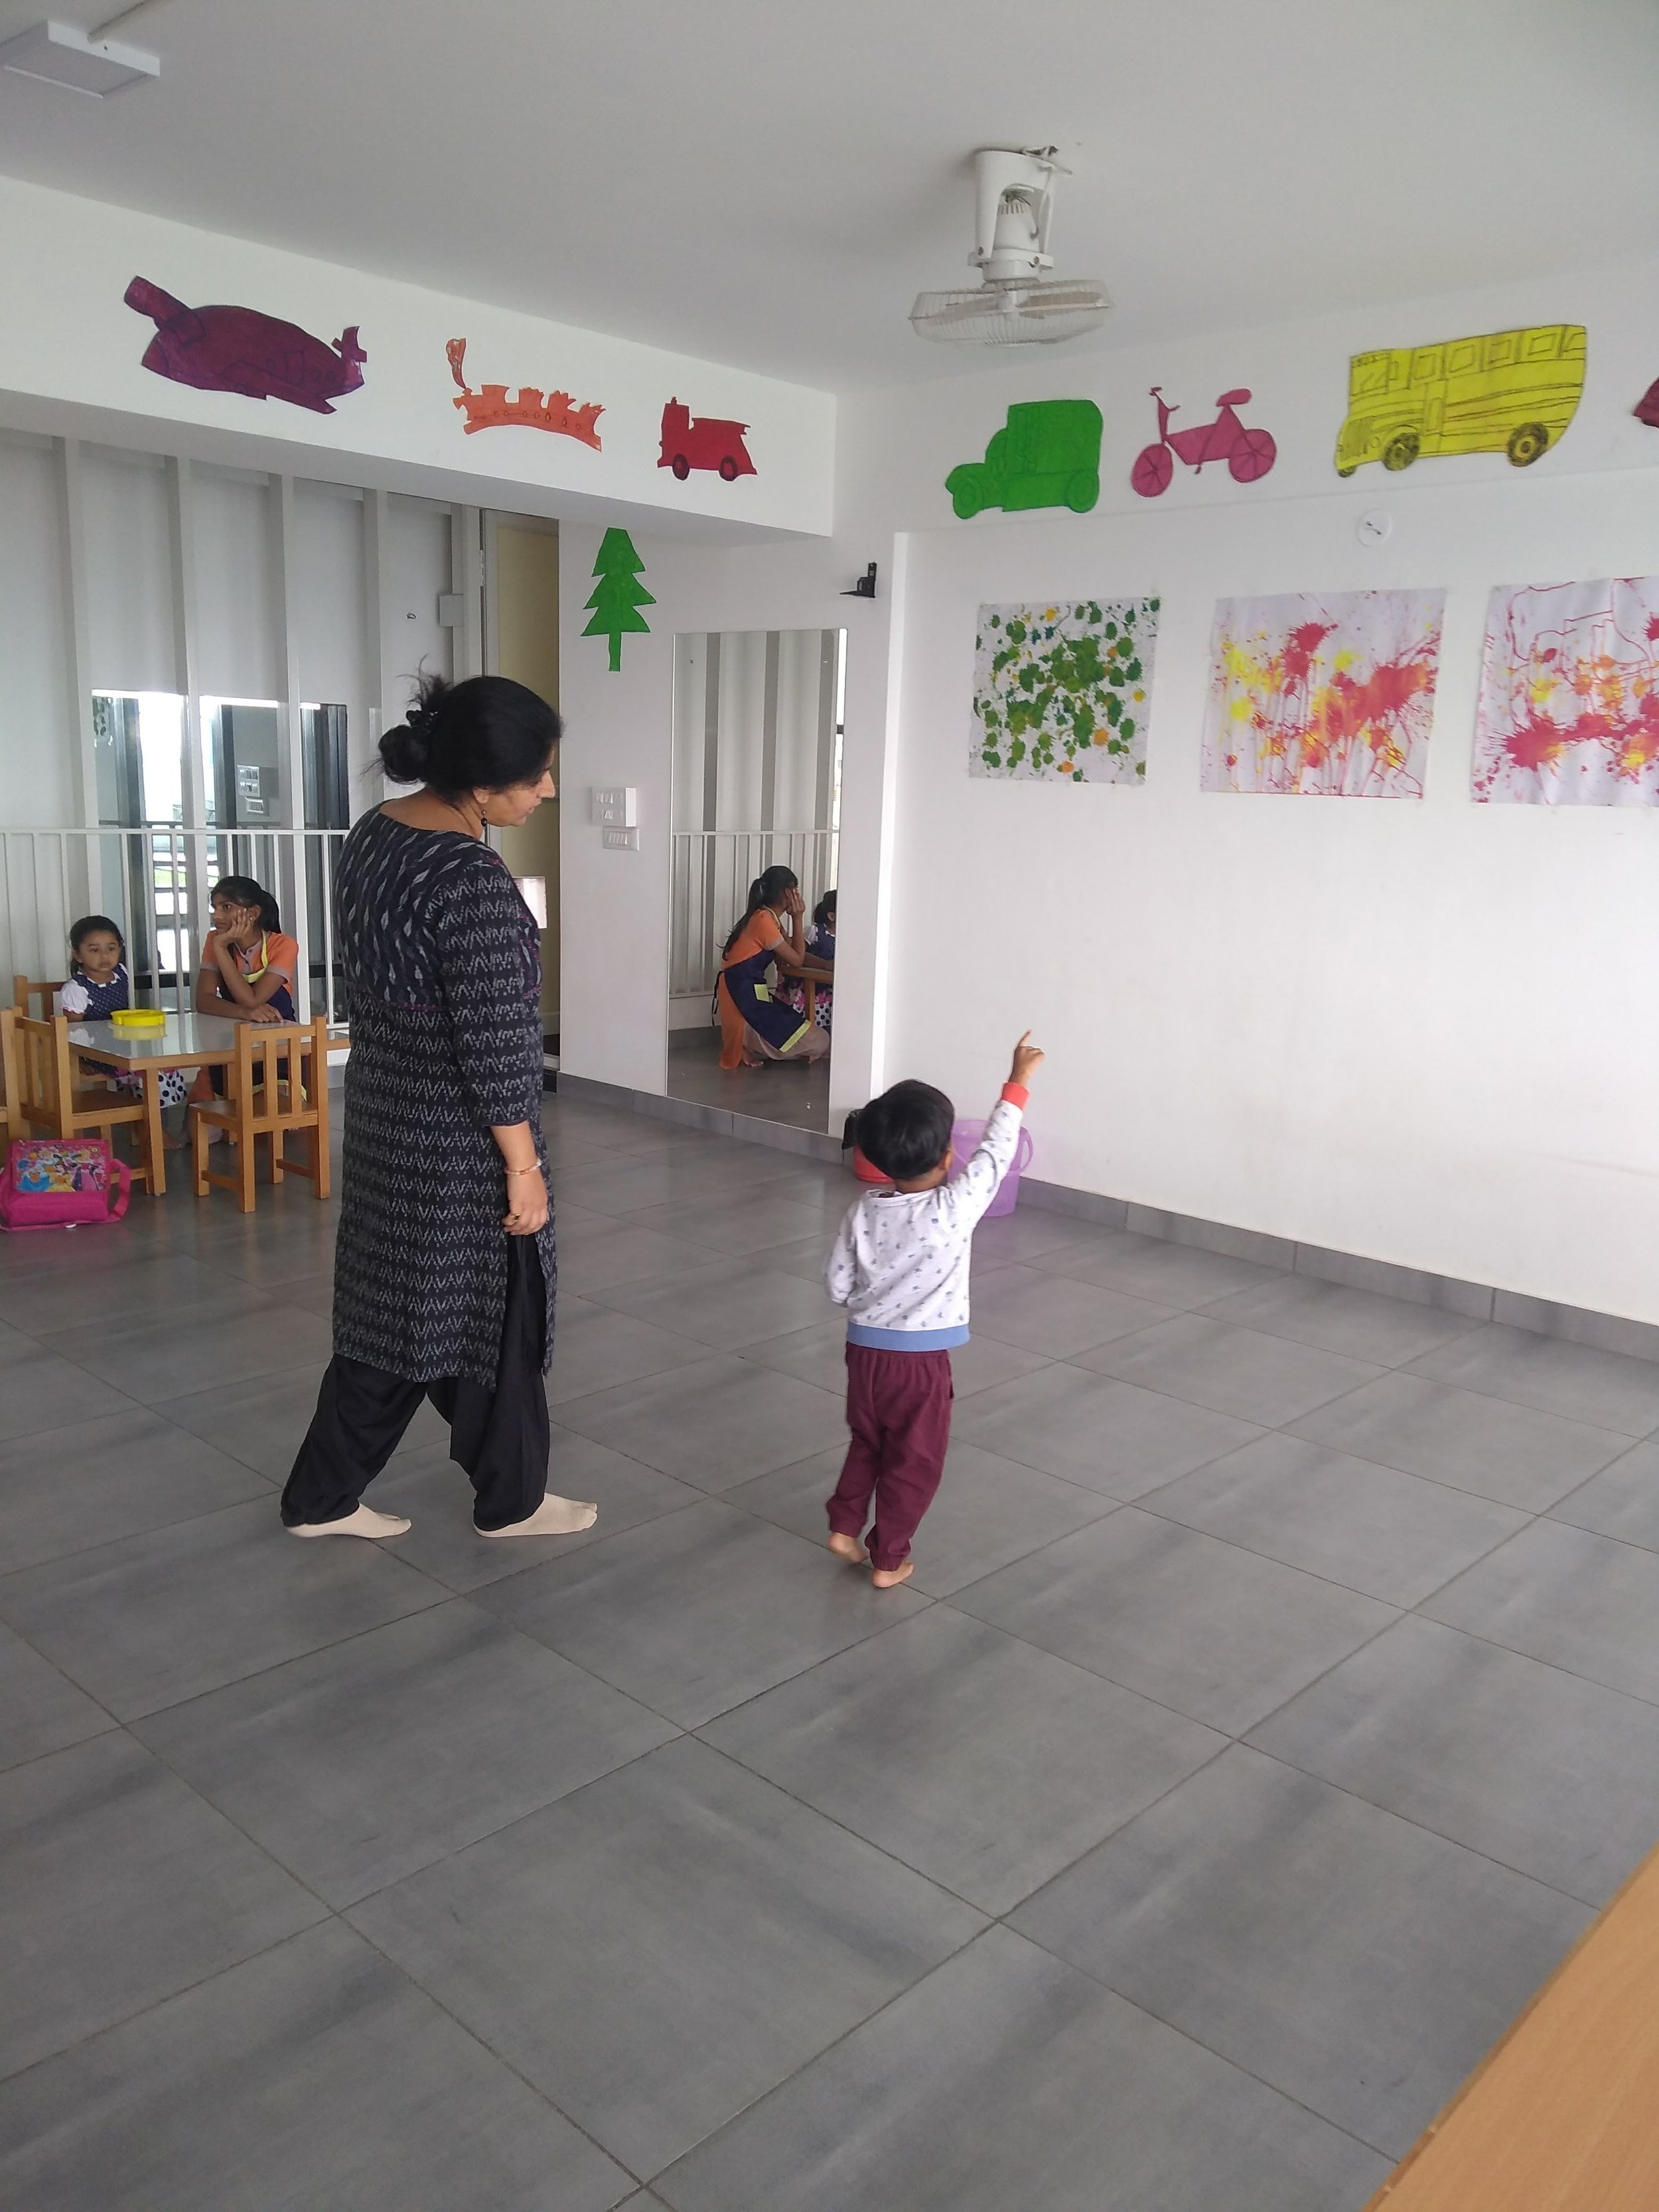 Educator following the child's interest in art